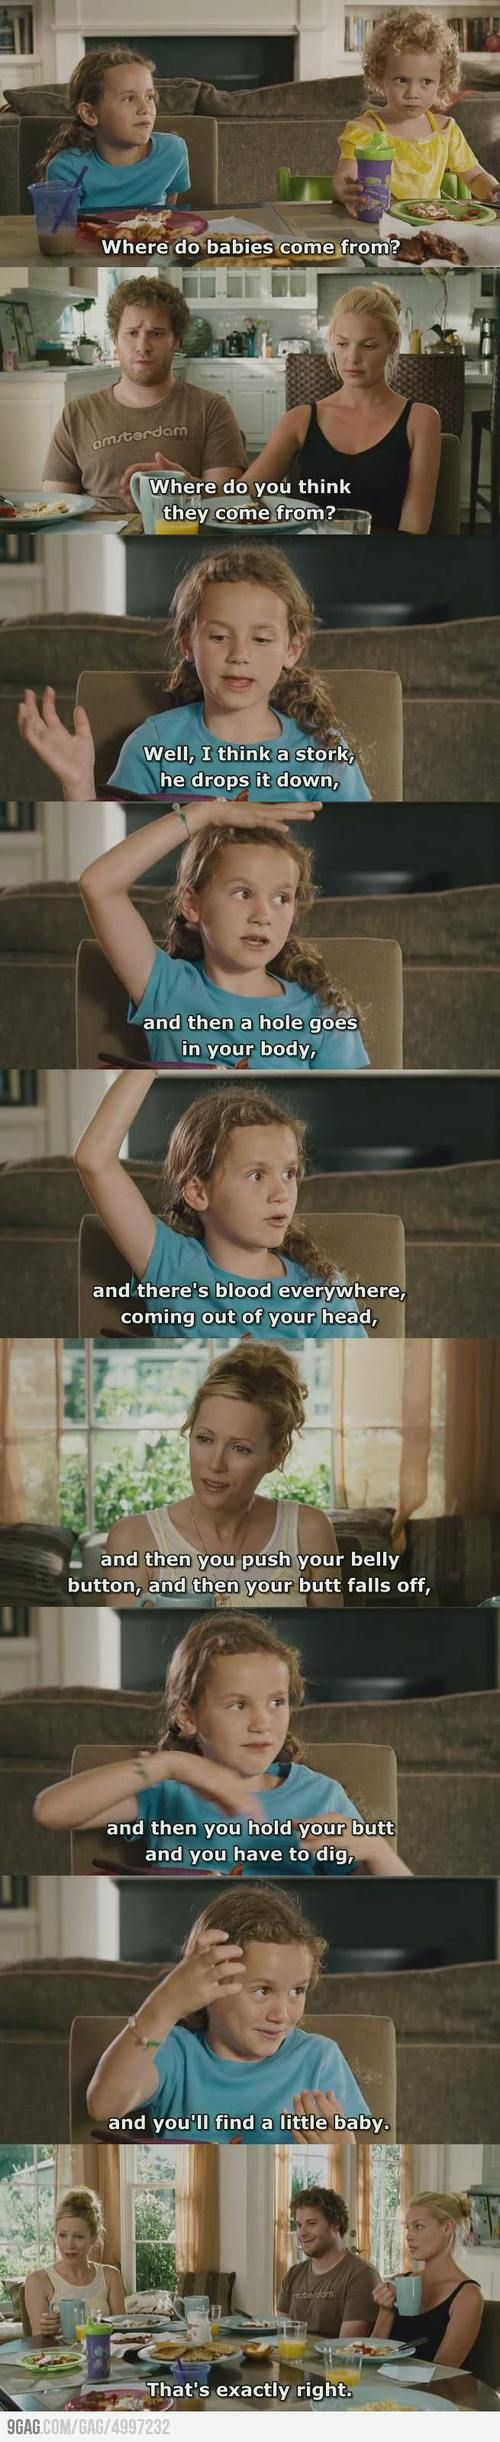 Knocked Up. One of my faves. Love thus part, cracks me up every time.